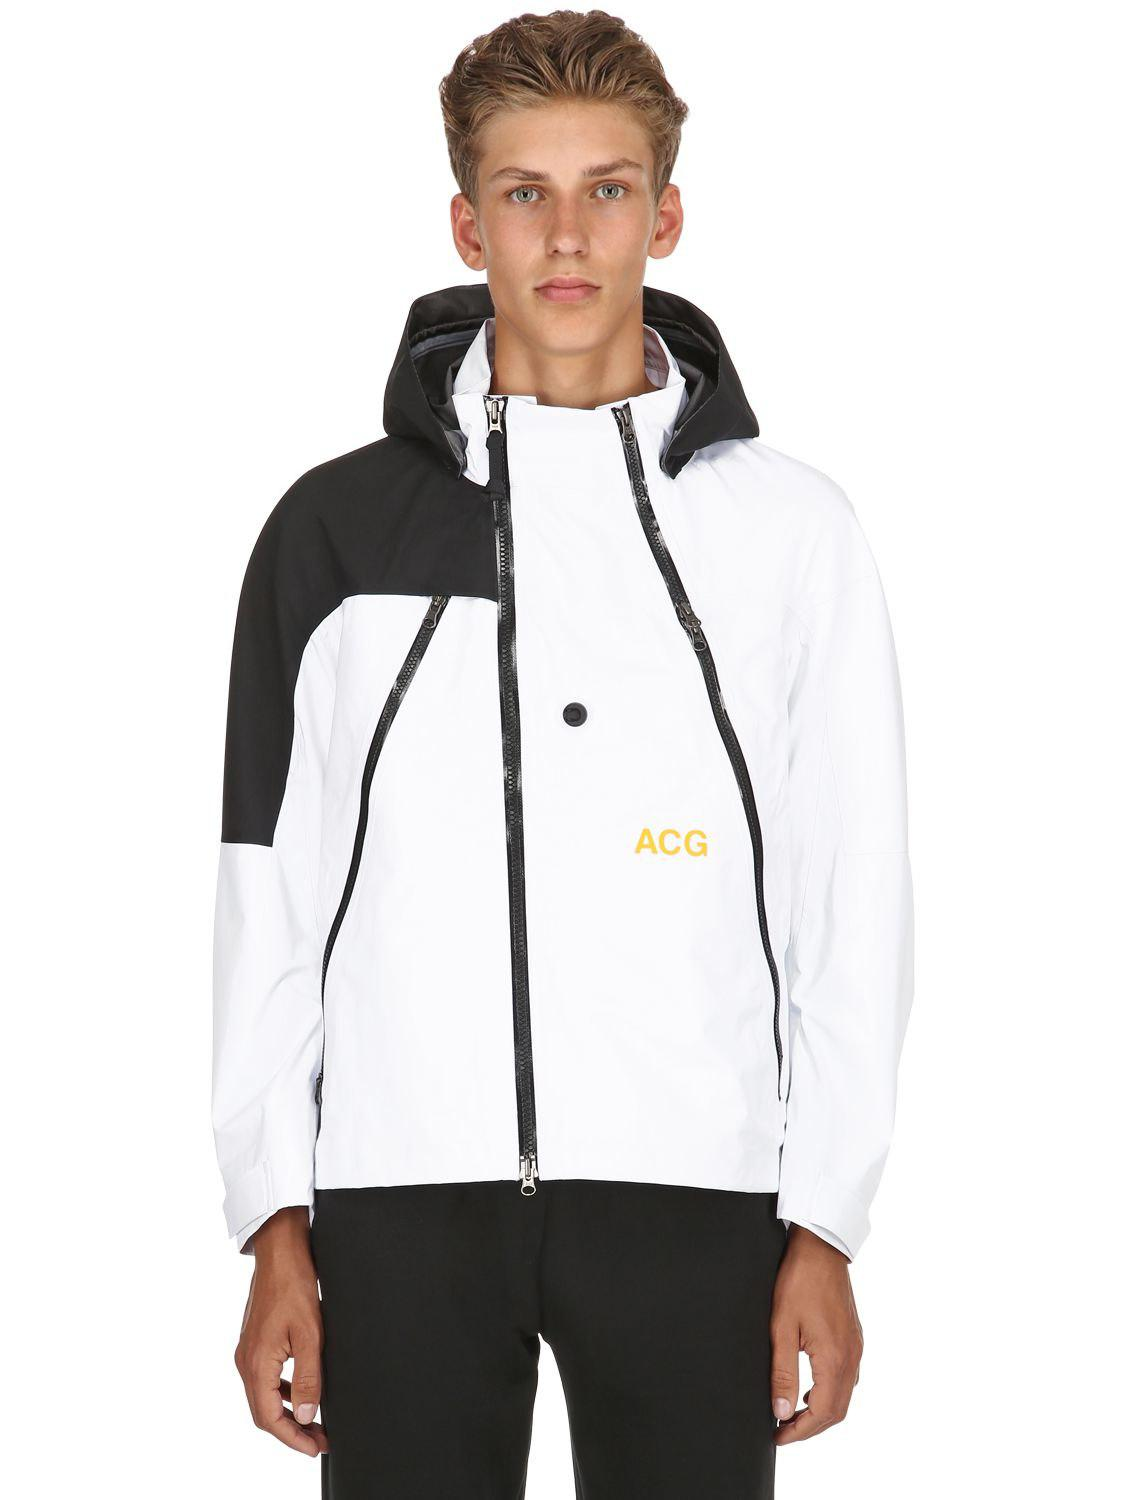 cheap for discount 61197 9c1e6 Nike Nikelab Acg Gore-tex Alpine Jacket in White for Men - Lyst